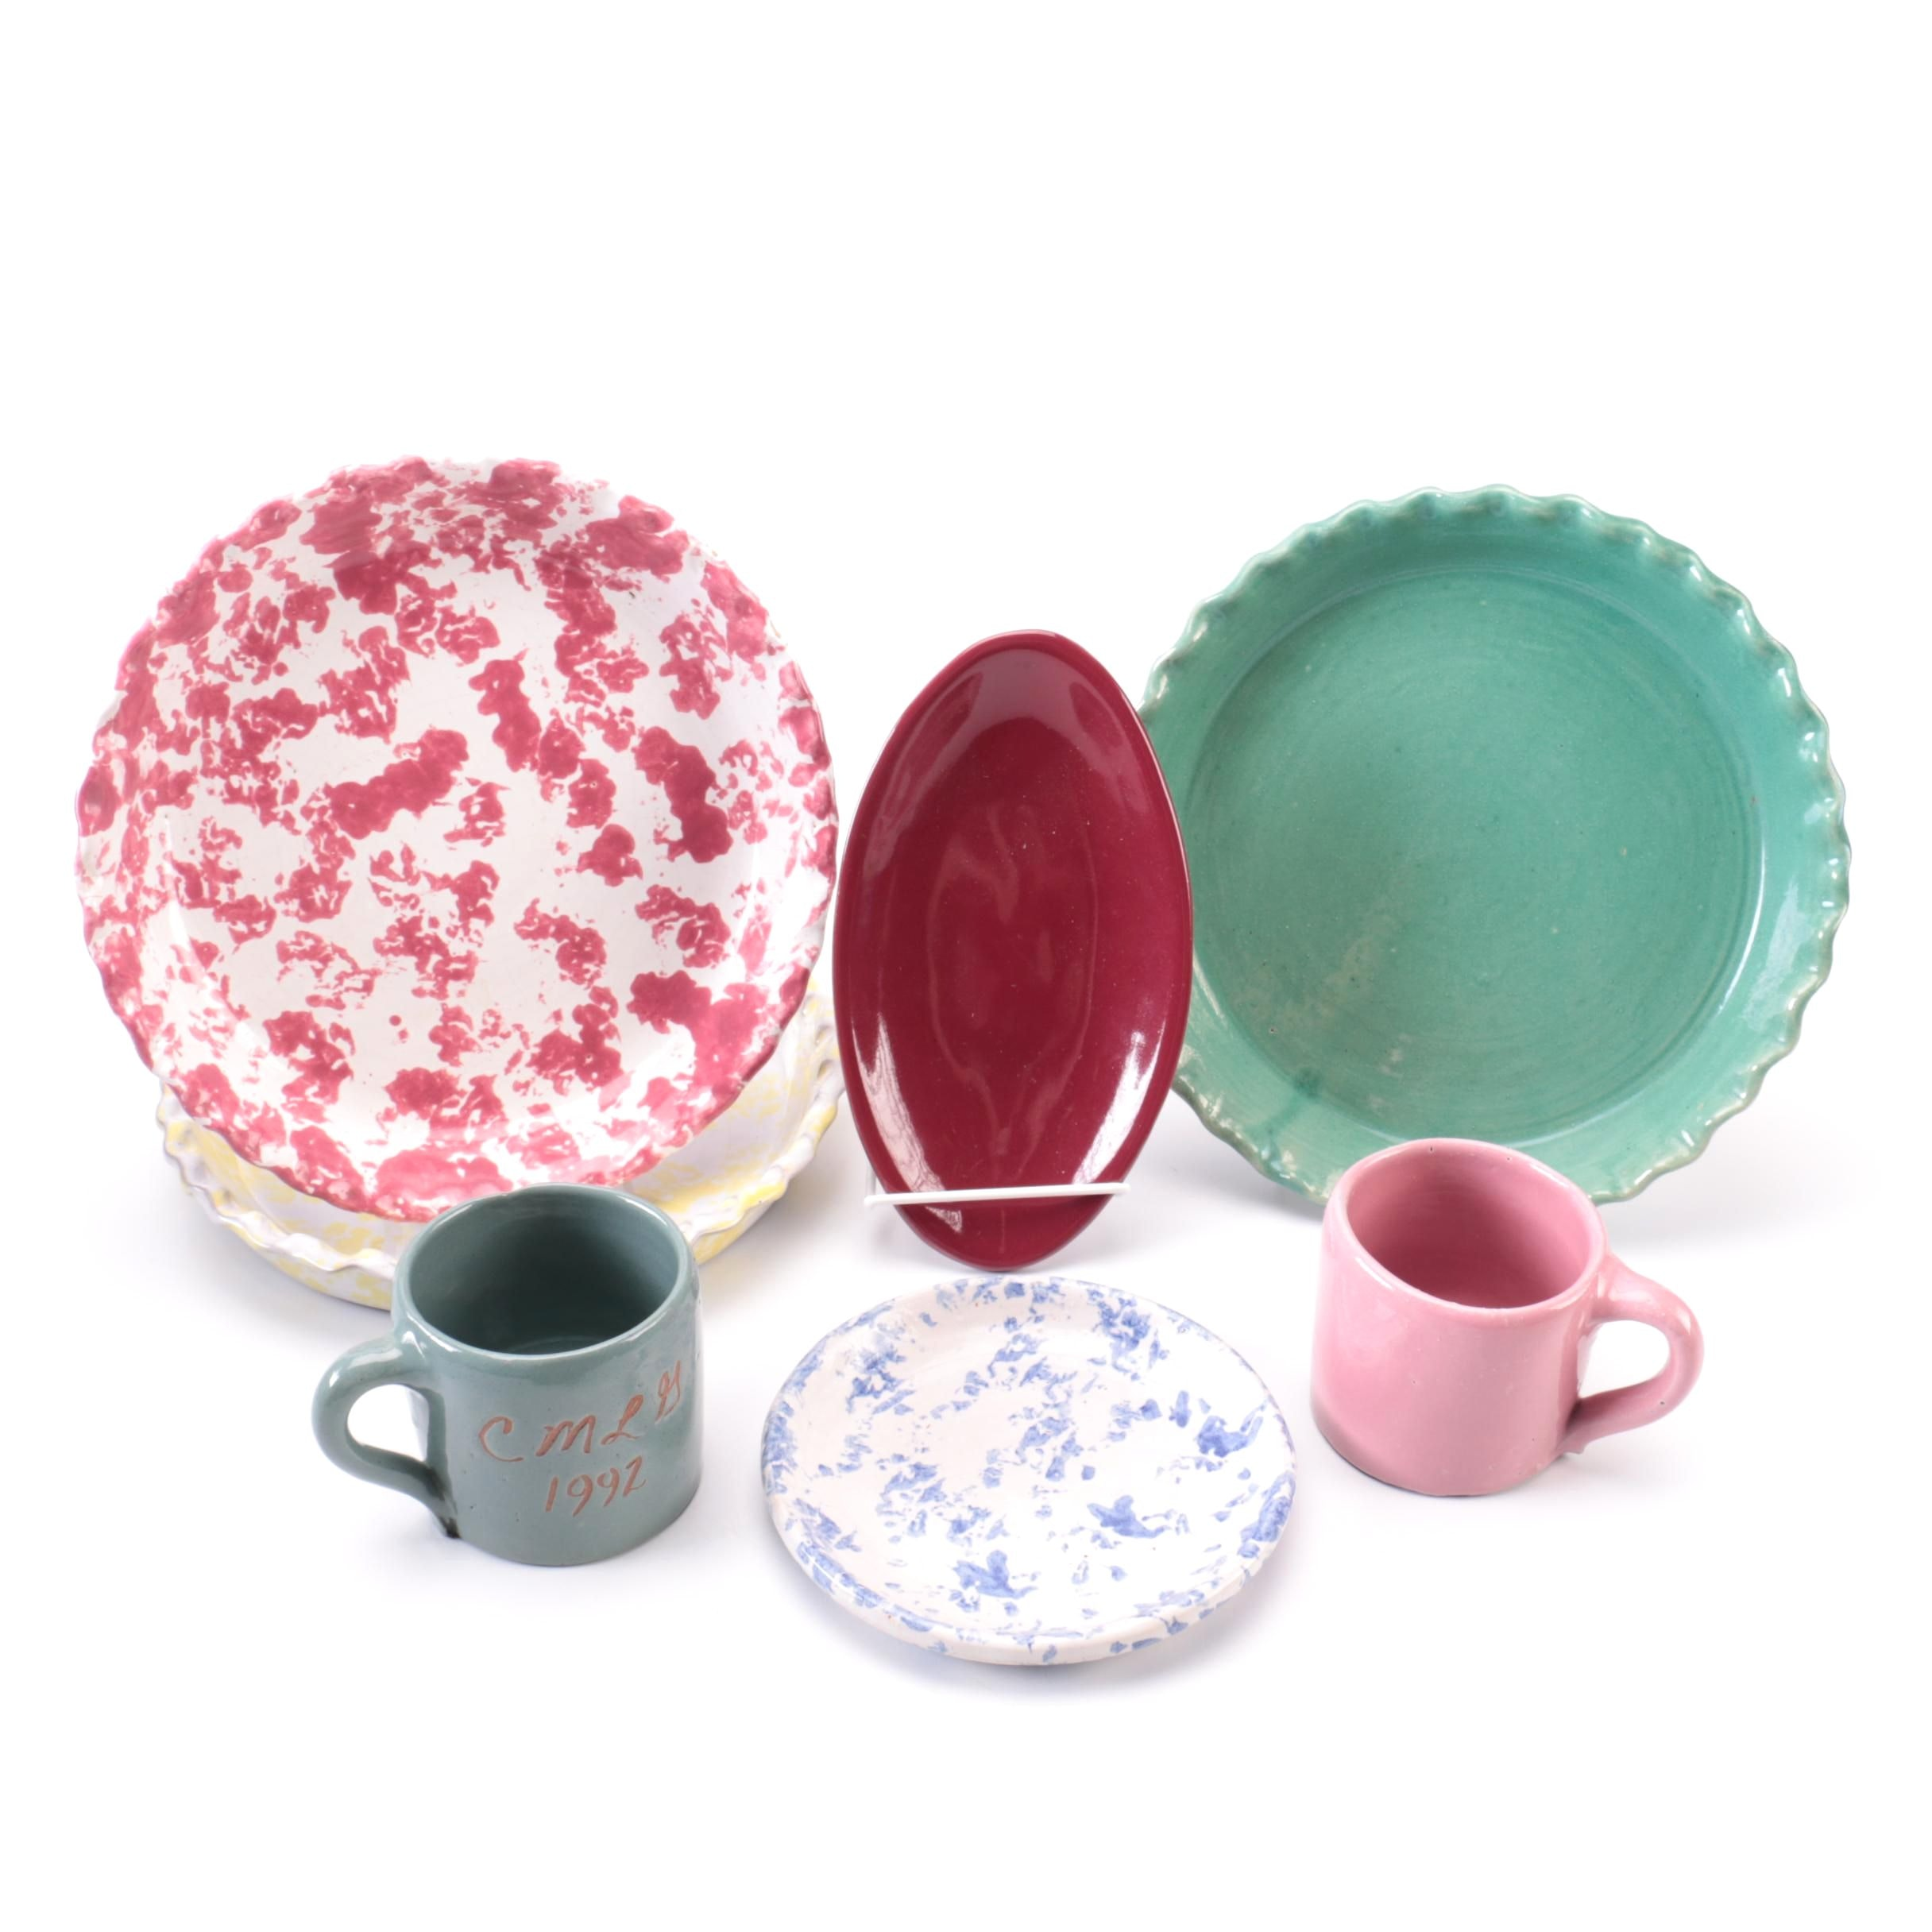 Collection of Bybee Pottery Pie Plates and Tableware